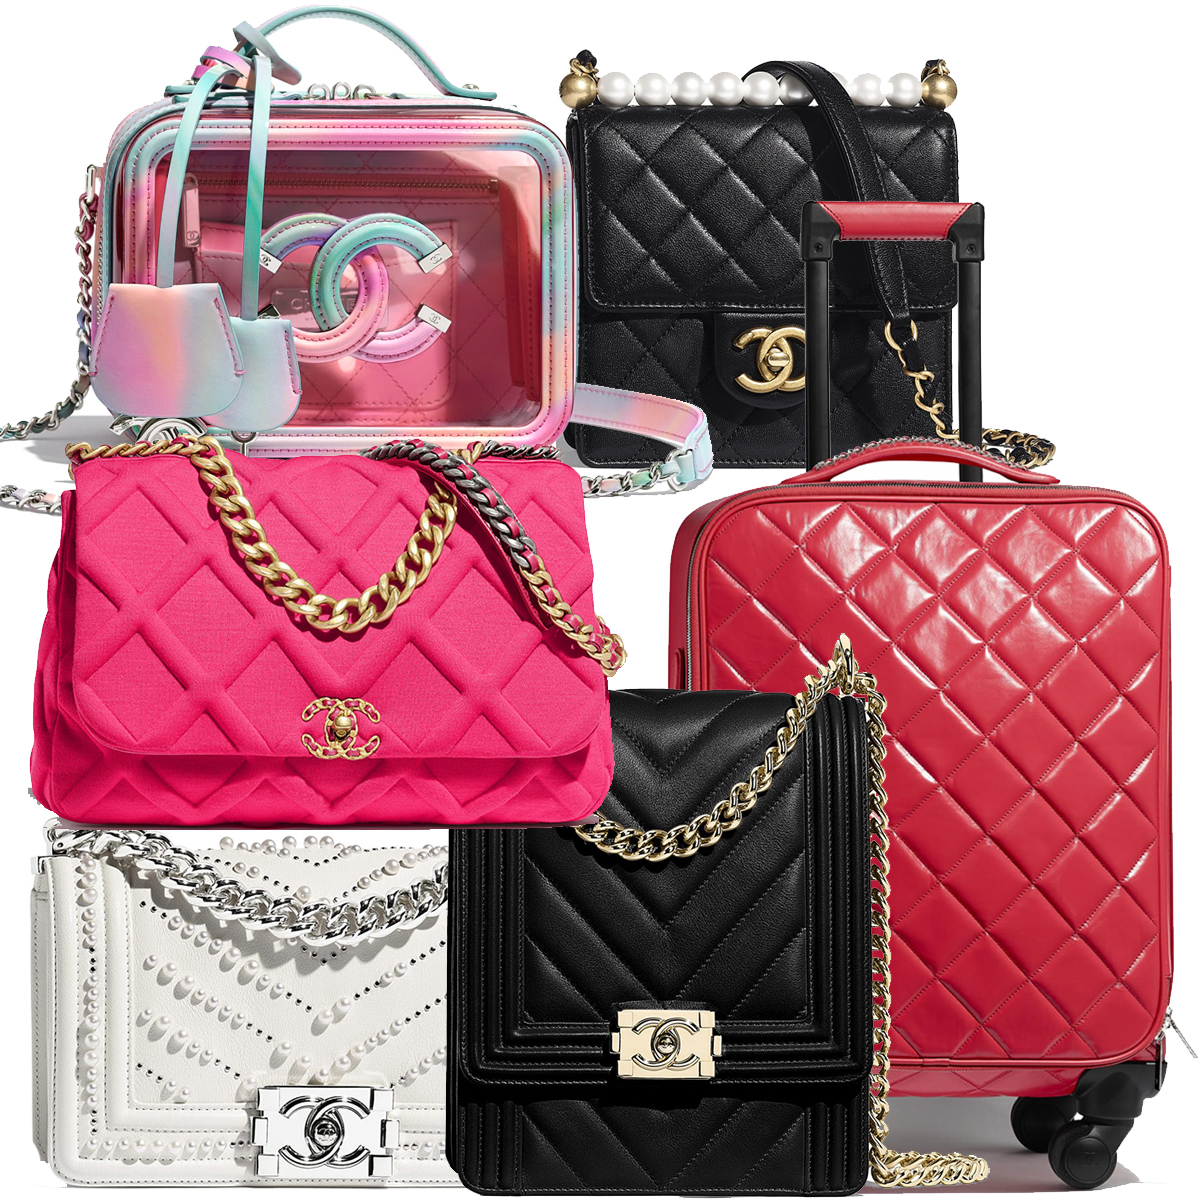 Chanel Cruise Classic Bag Collection